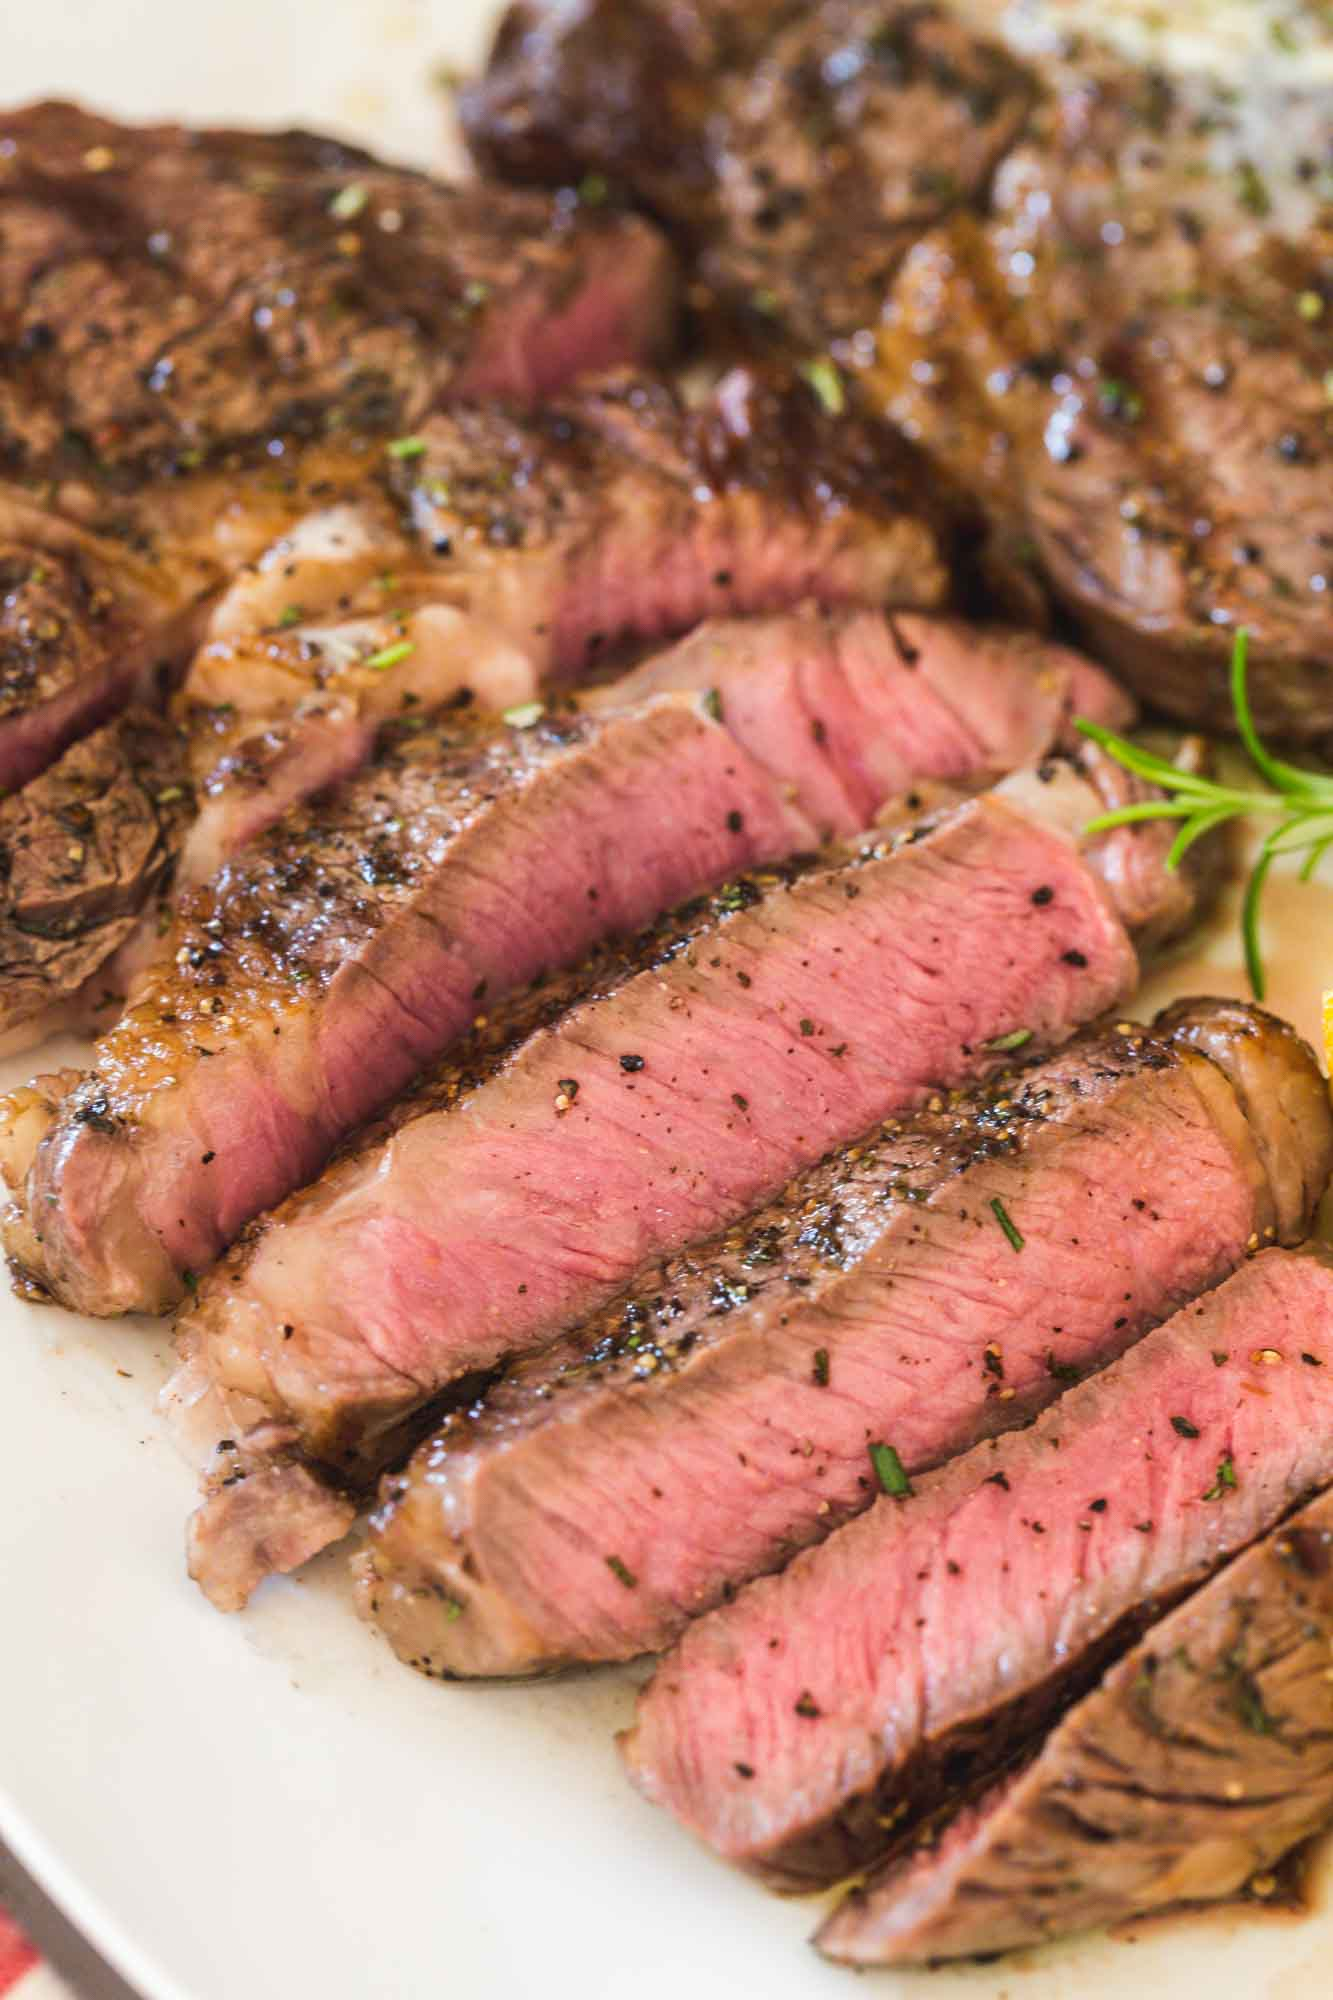 Sliced grilled steak that is grilled to medium rare